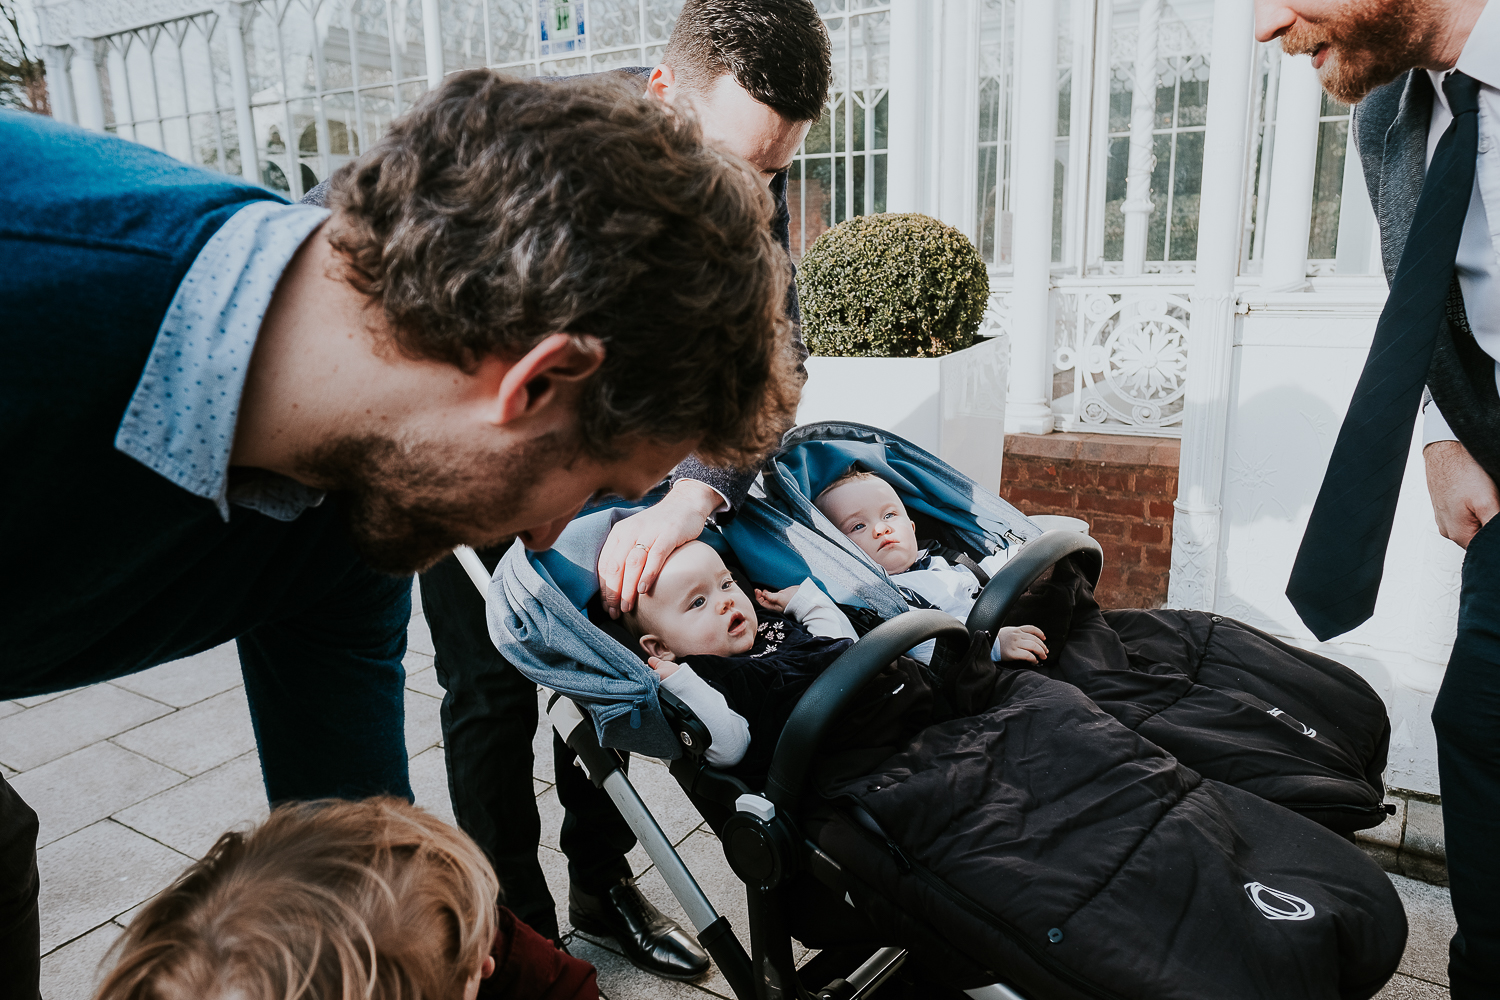 horniman museum conservatory london christening photography twins